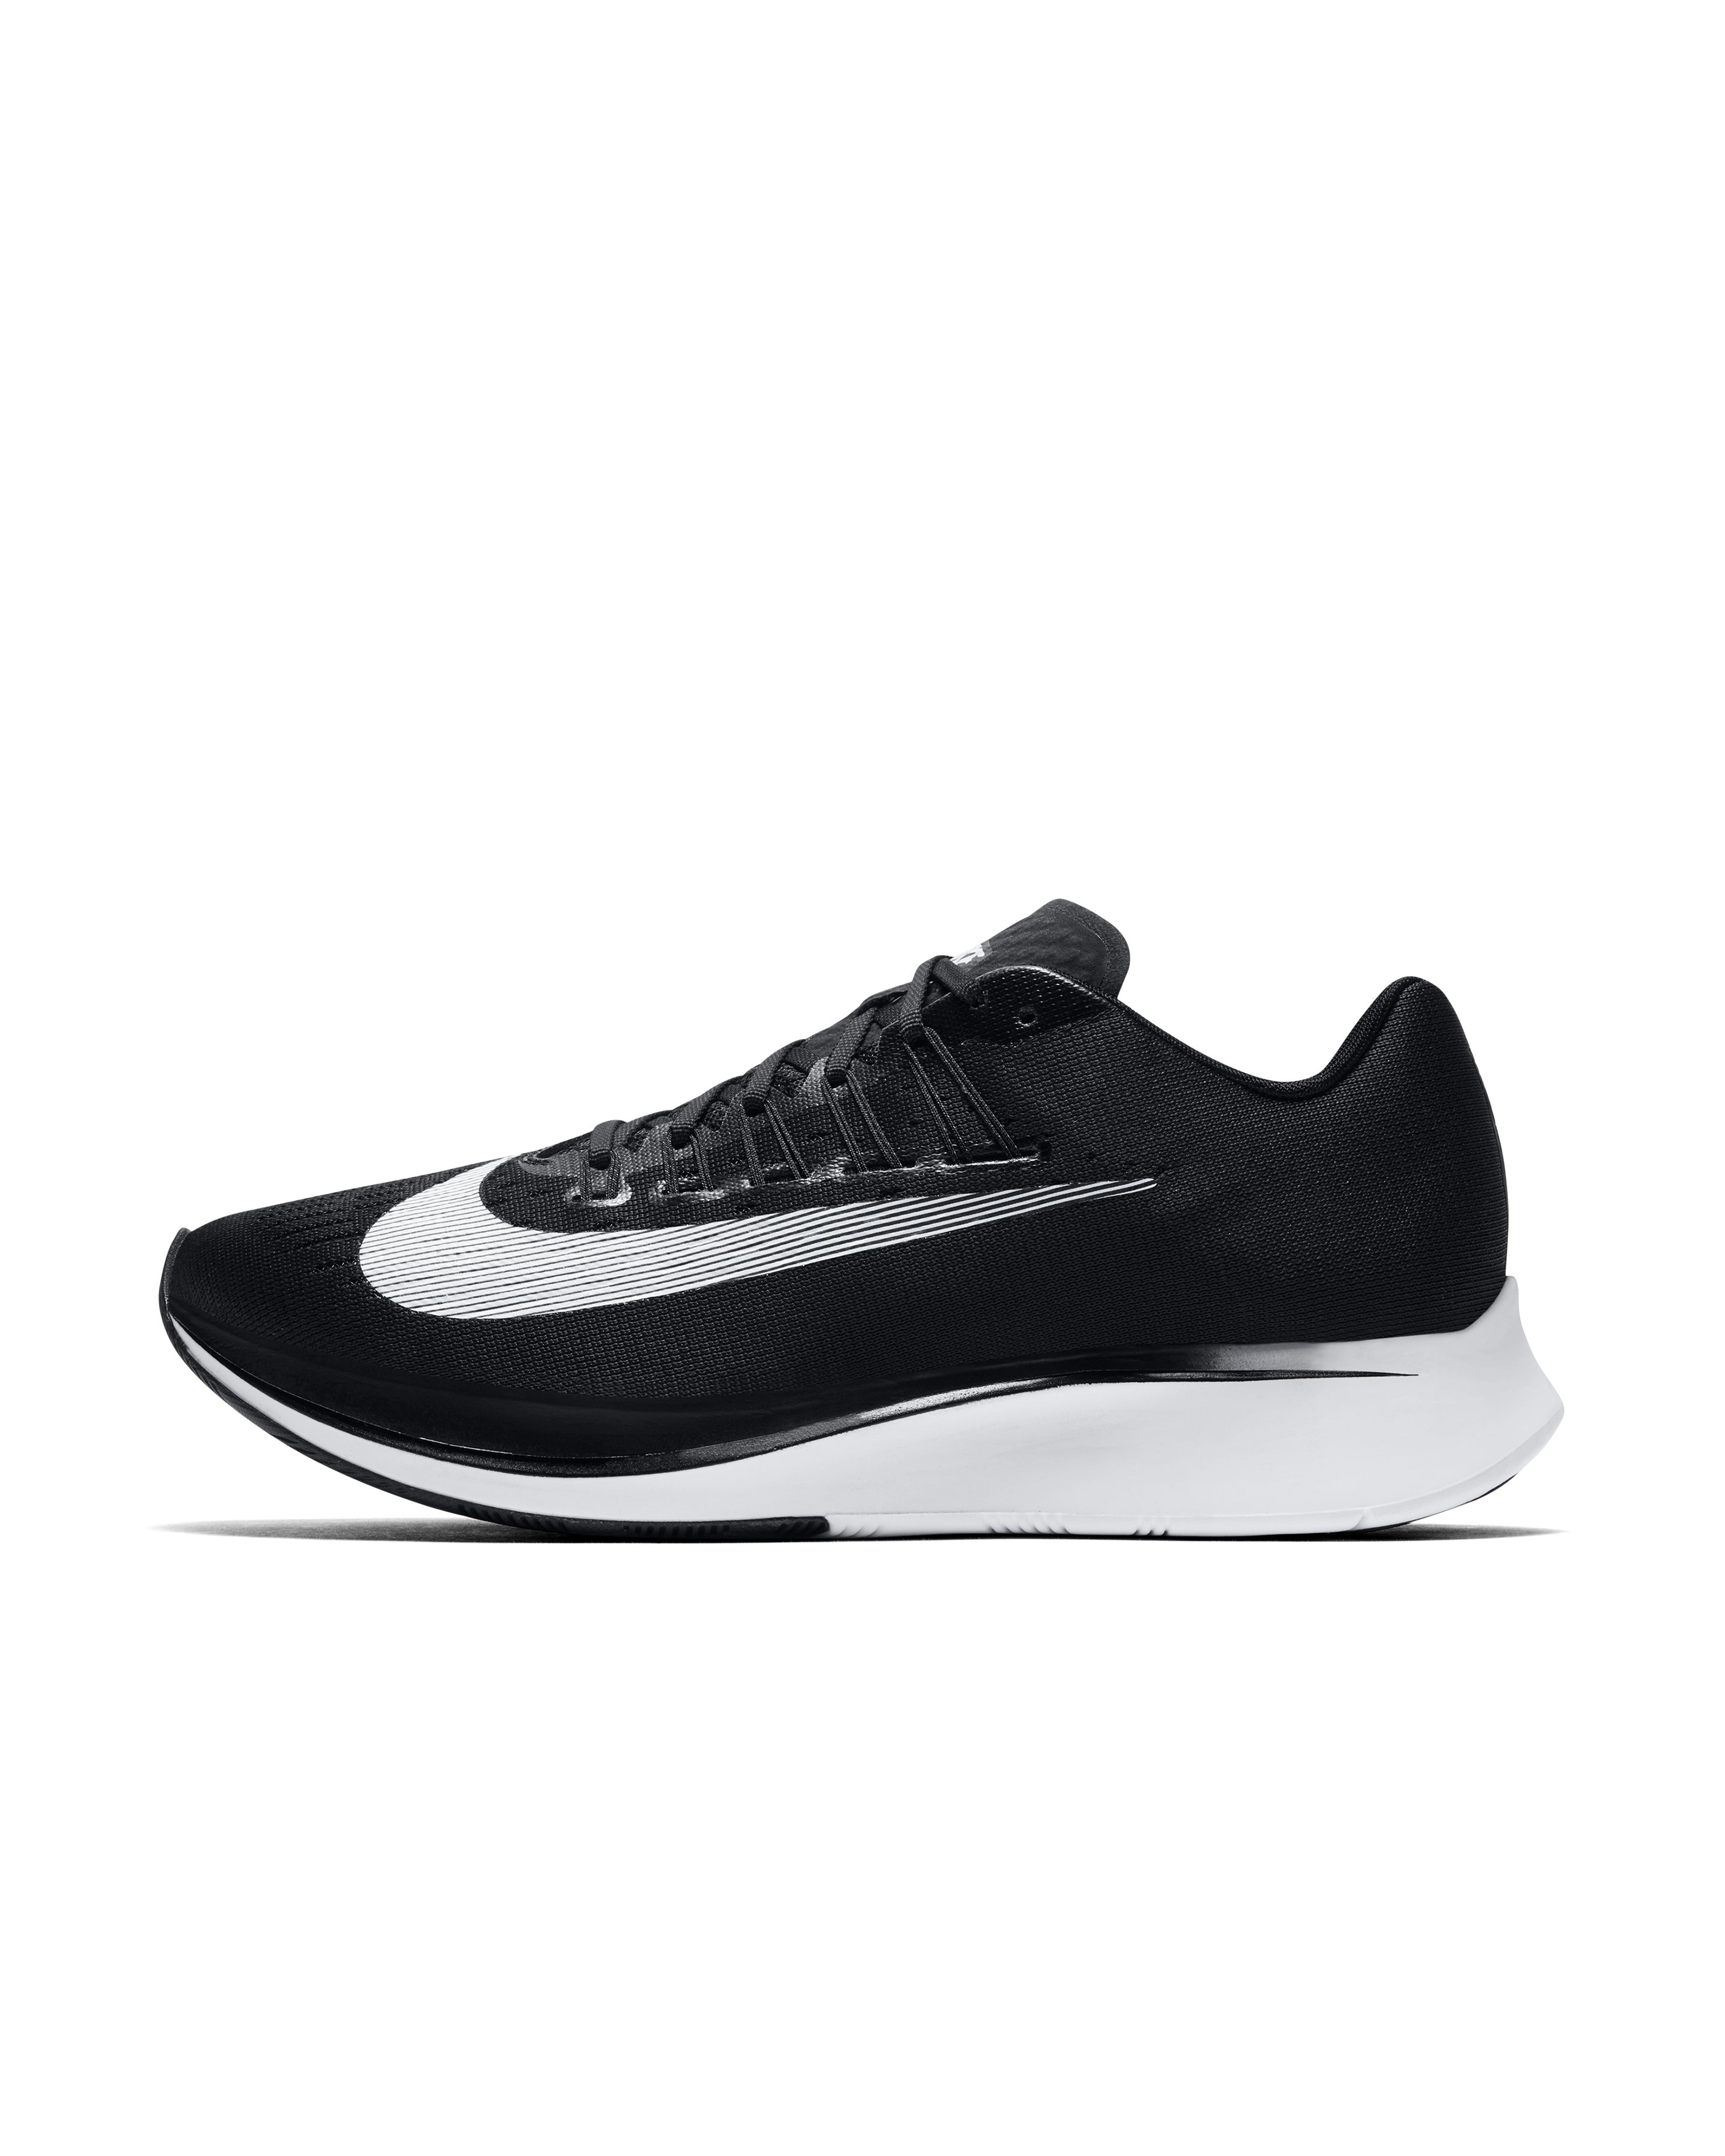 hot sale online 5444c cb714 Best Nike Running Shoes   Nike Shoe Reviews 2019